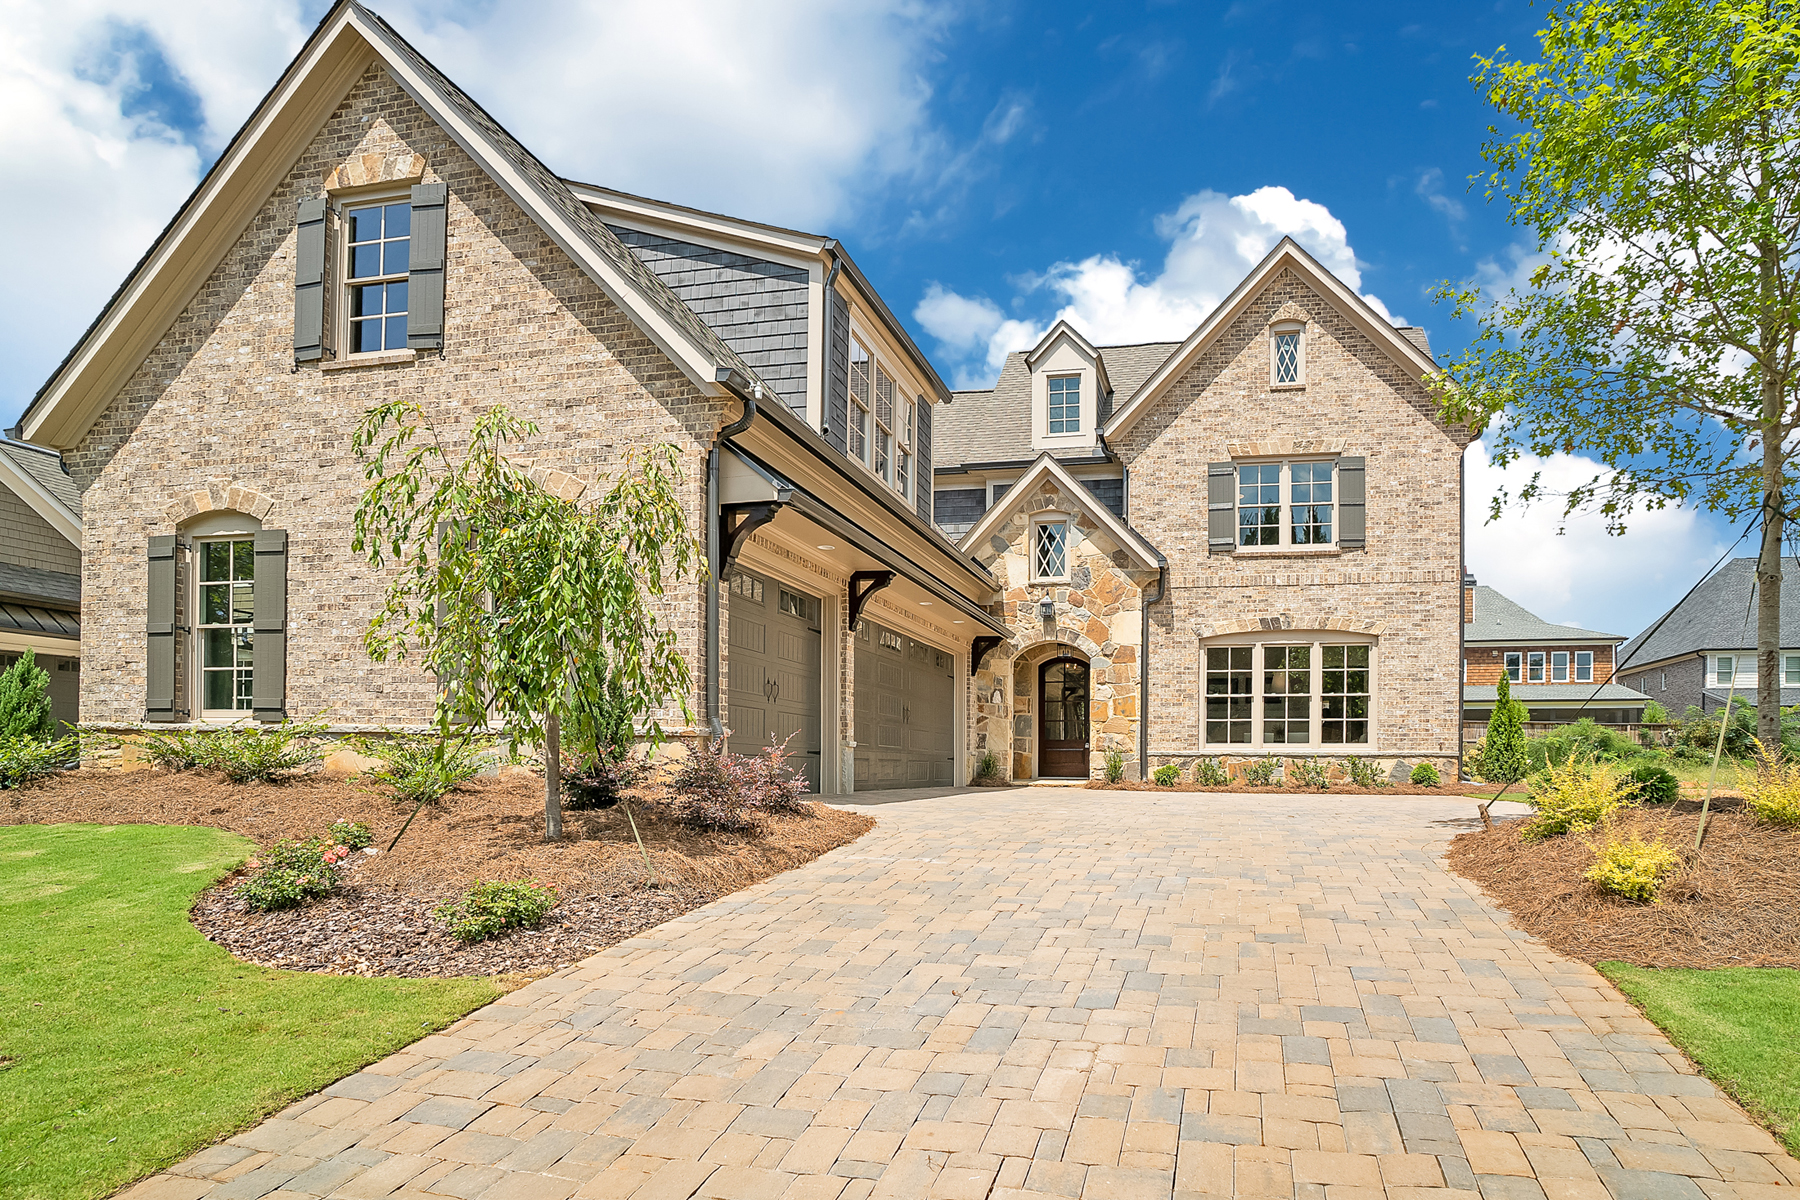 Luxury New Construction In The Heart Of East Cobb 4596 Oakside Point Marietta, Georgia 30067 États-Unis